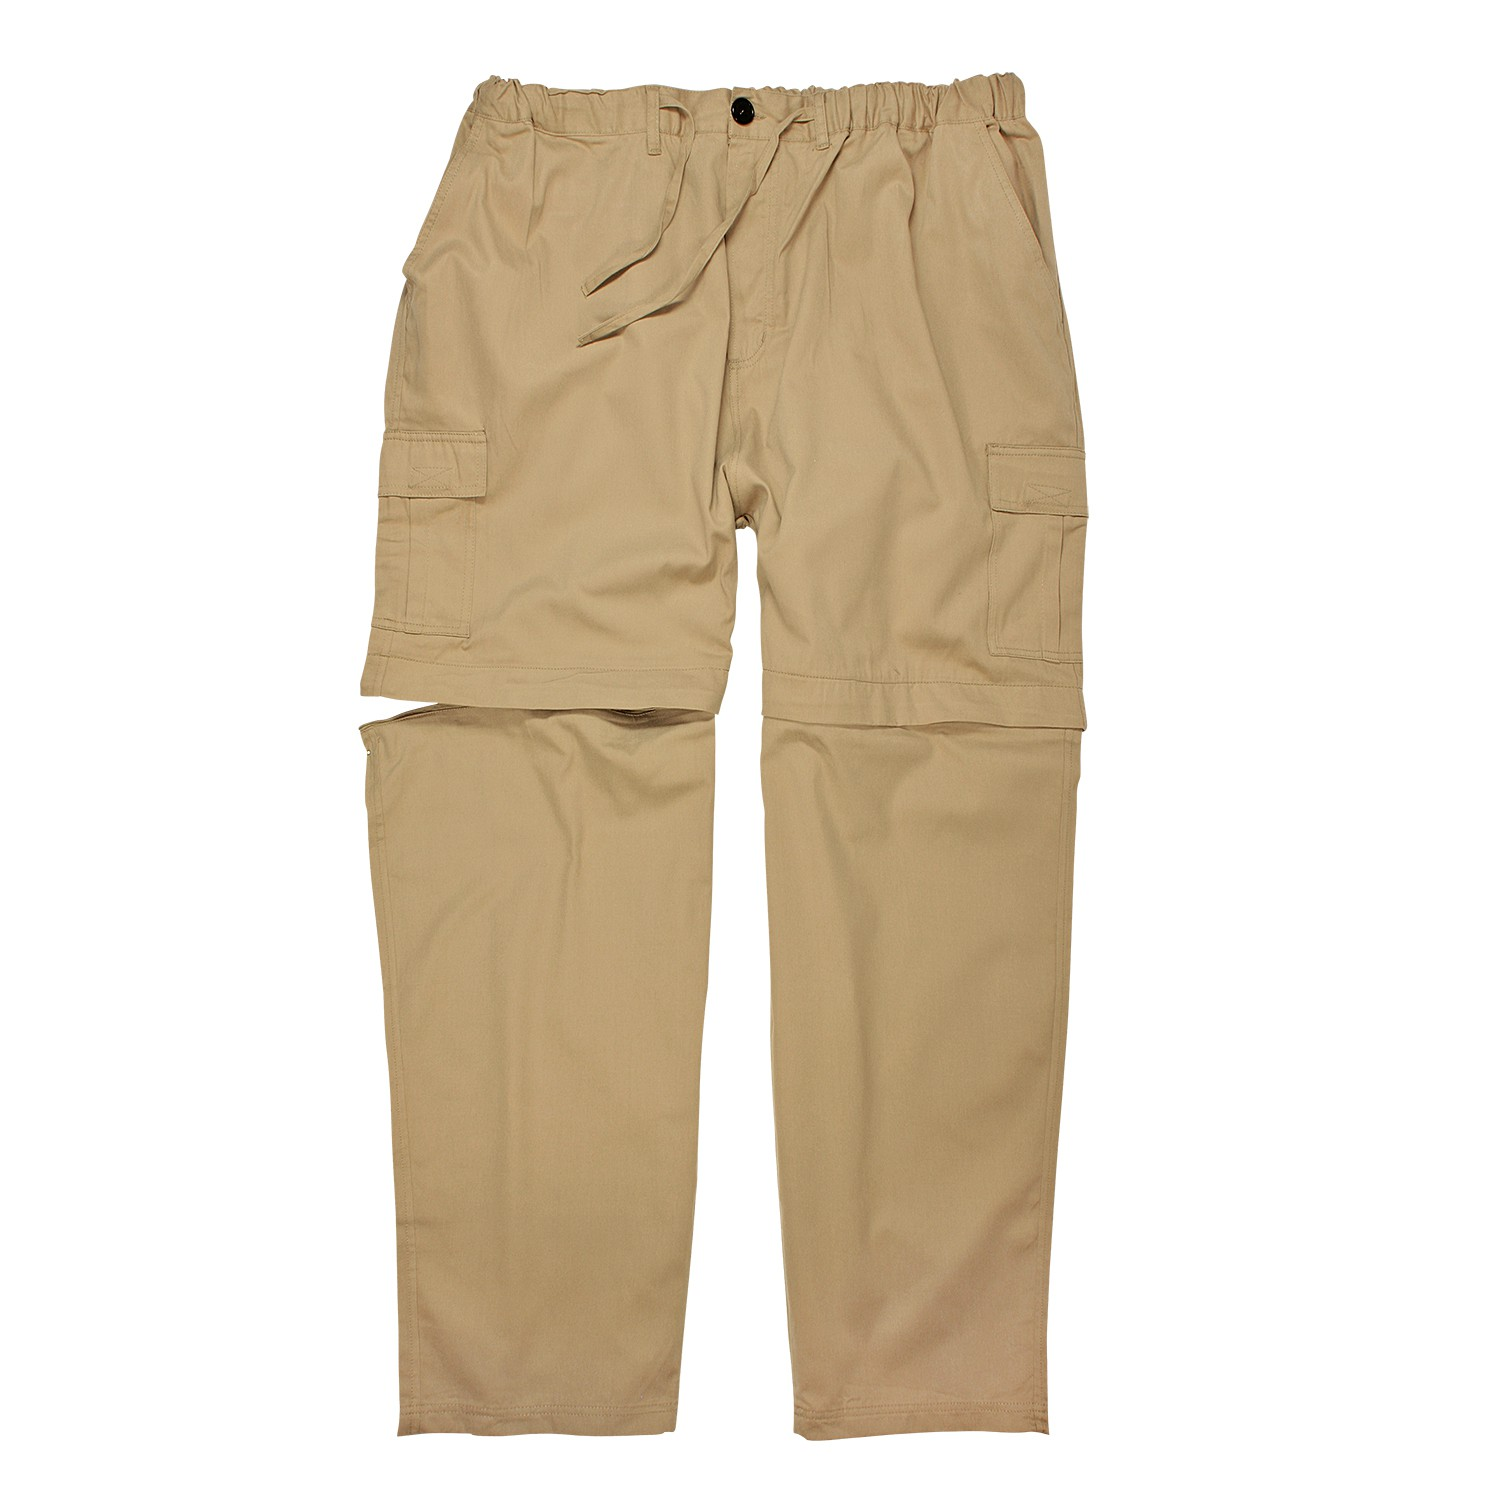 Detail Image to Zip-off-trousers by Abraxas in beige up to oversize 10XL